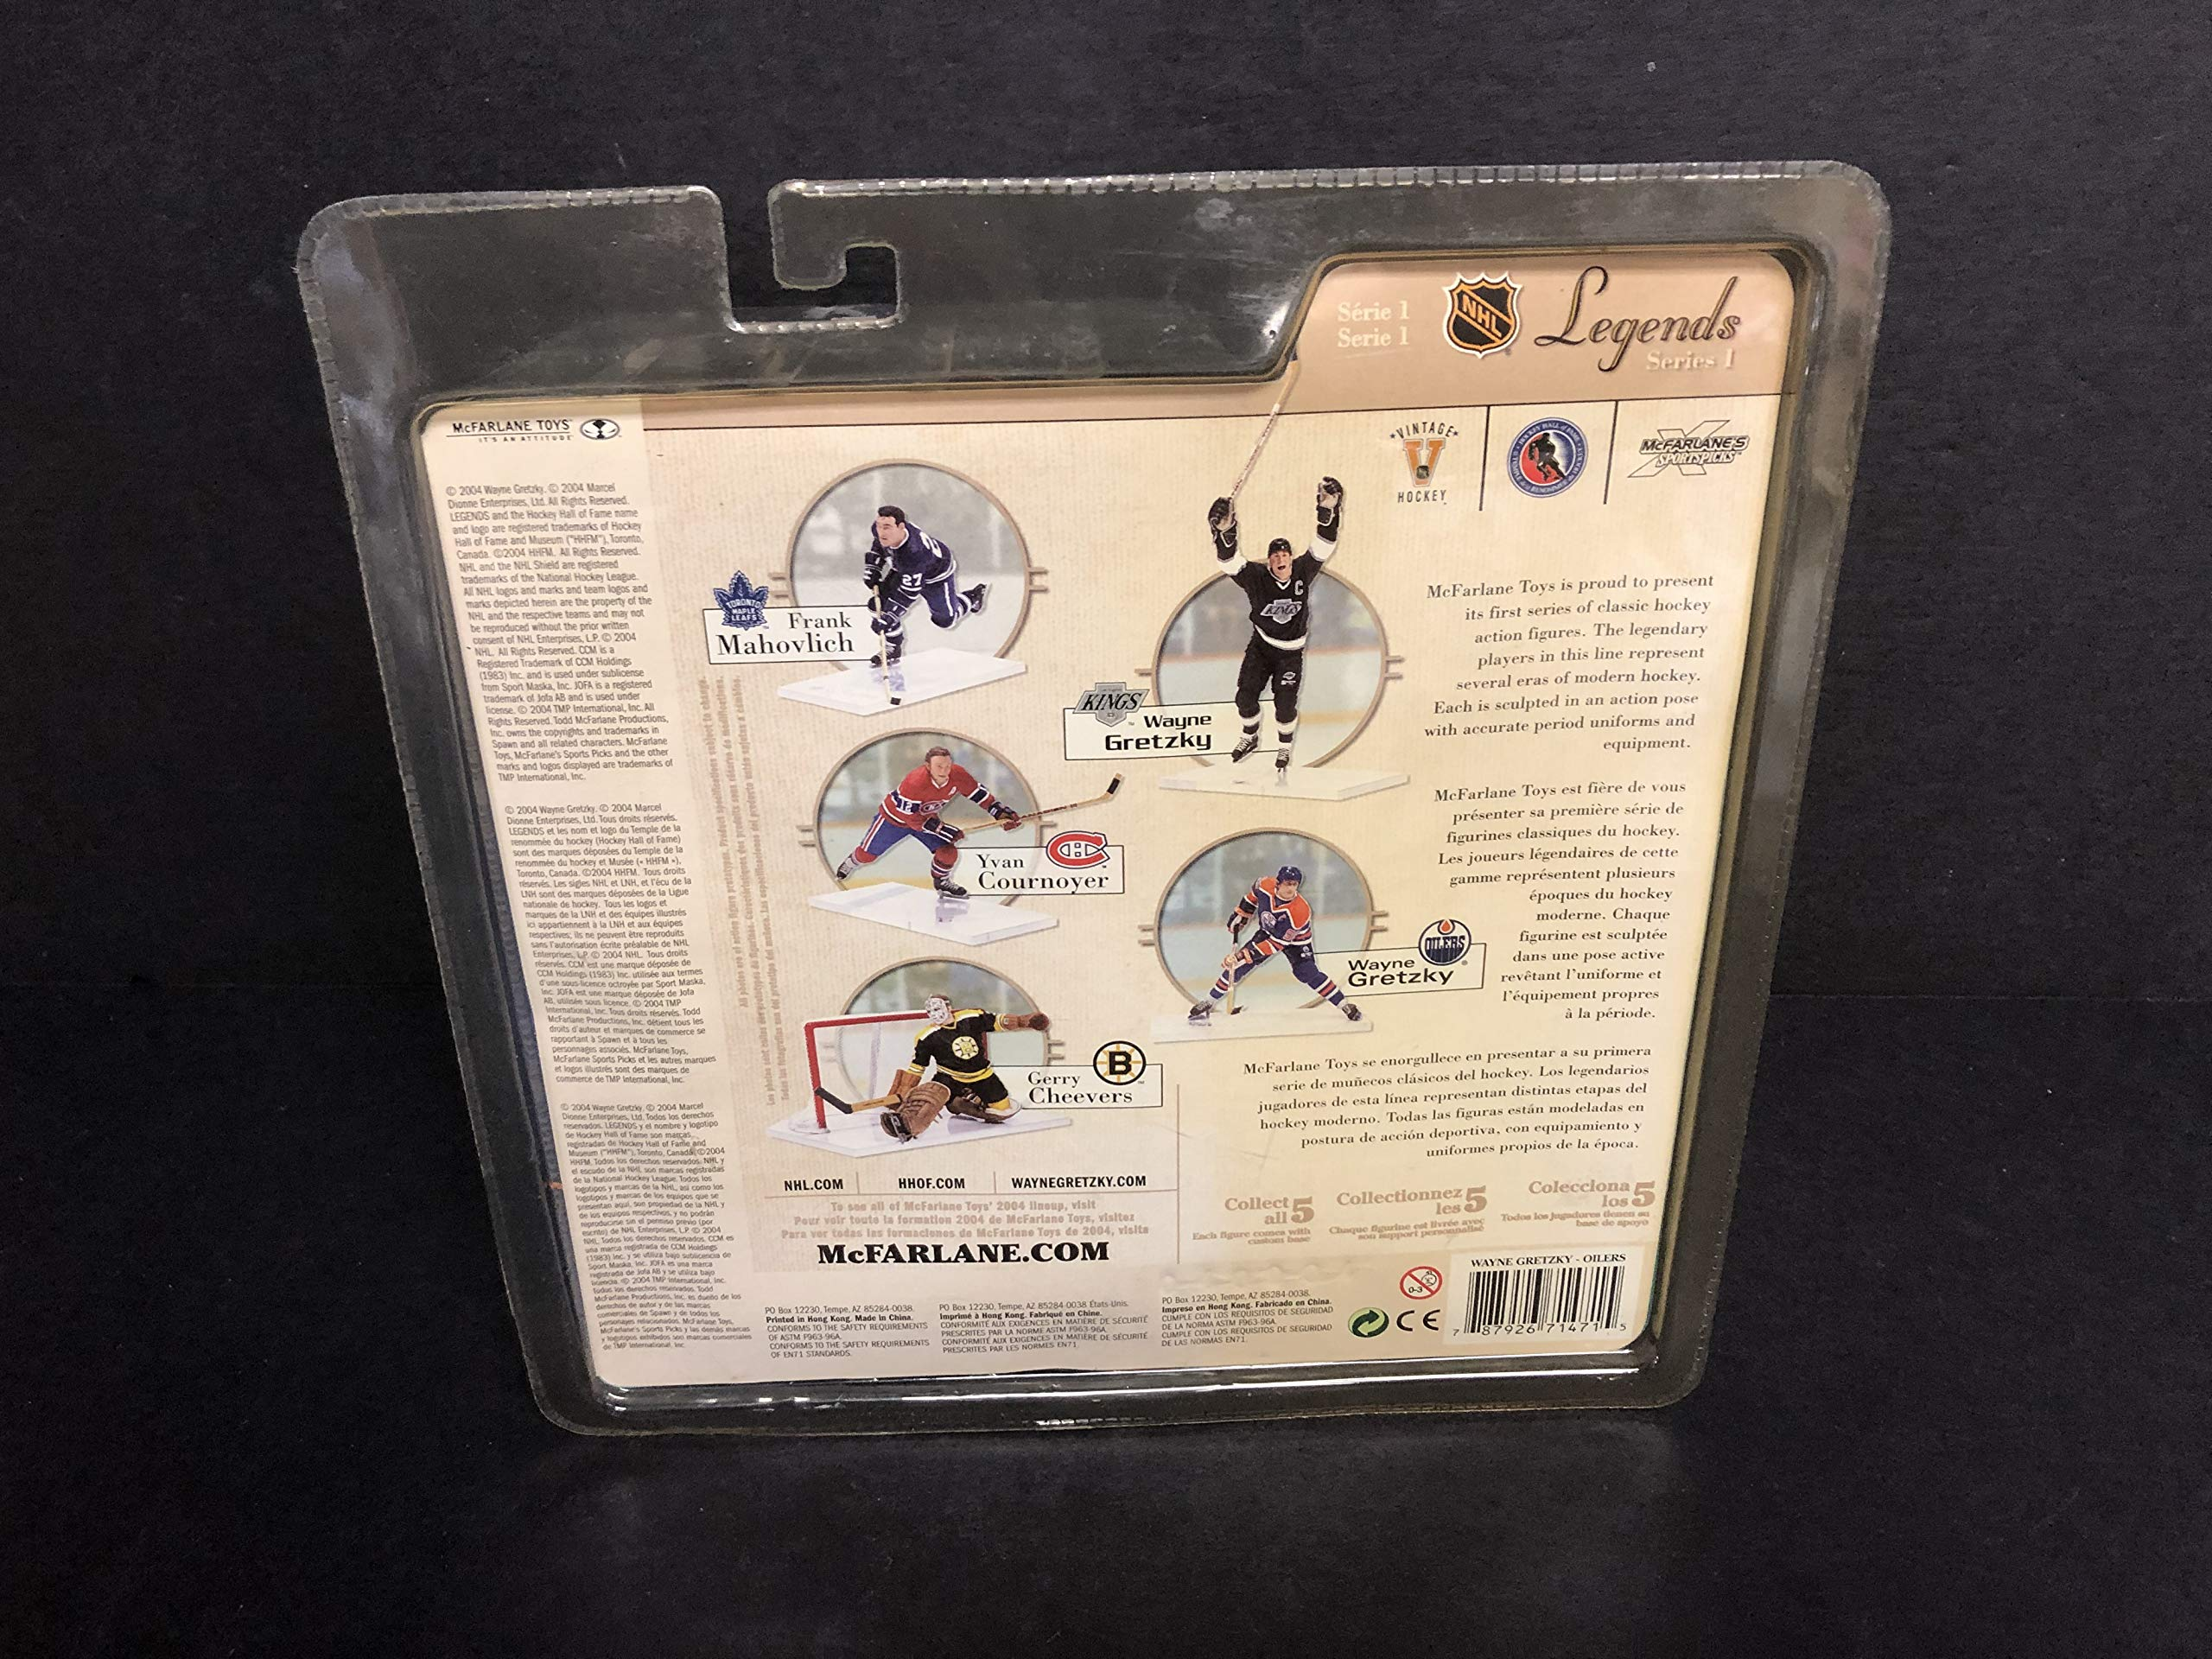 Wayne Gretzky Oilers McFarlane Legends Series 1 Action Figure with Hockey Stick